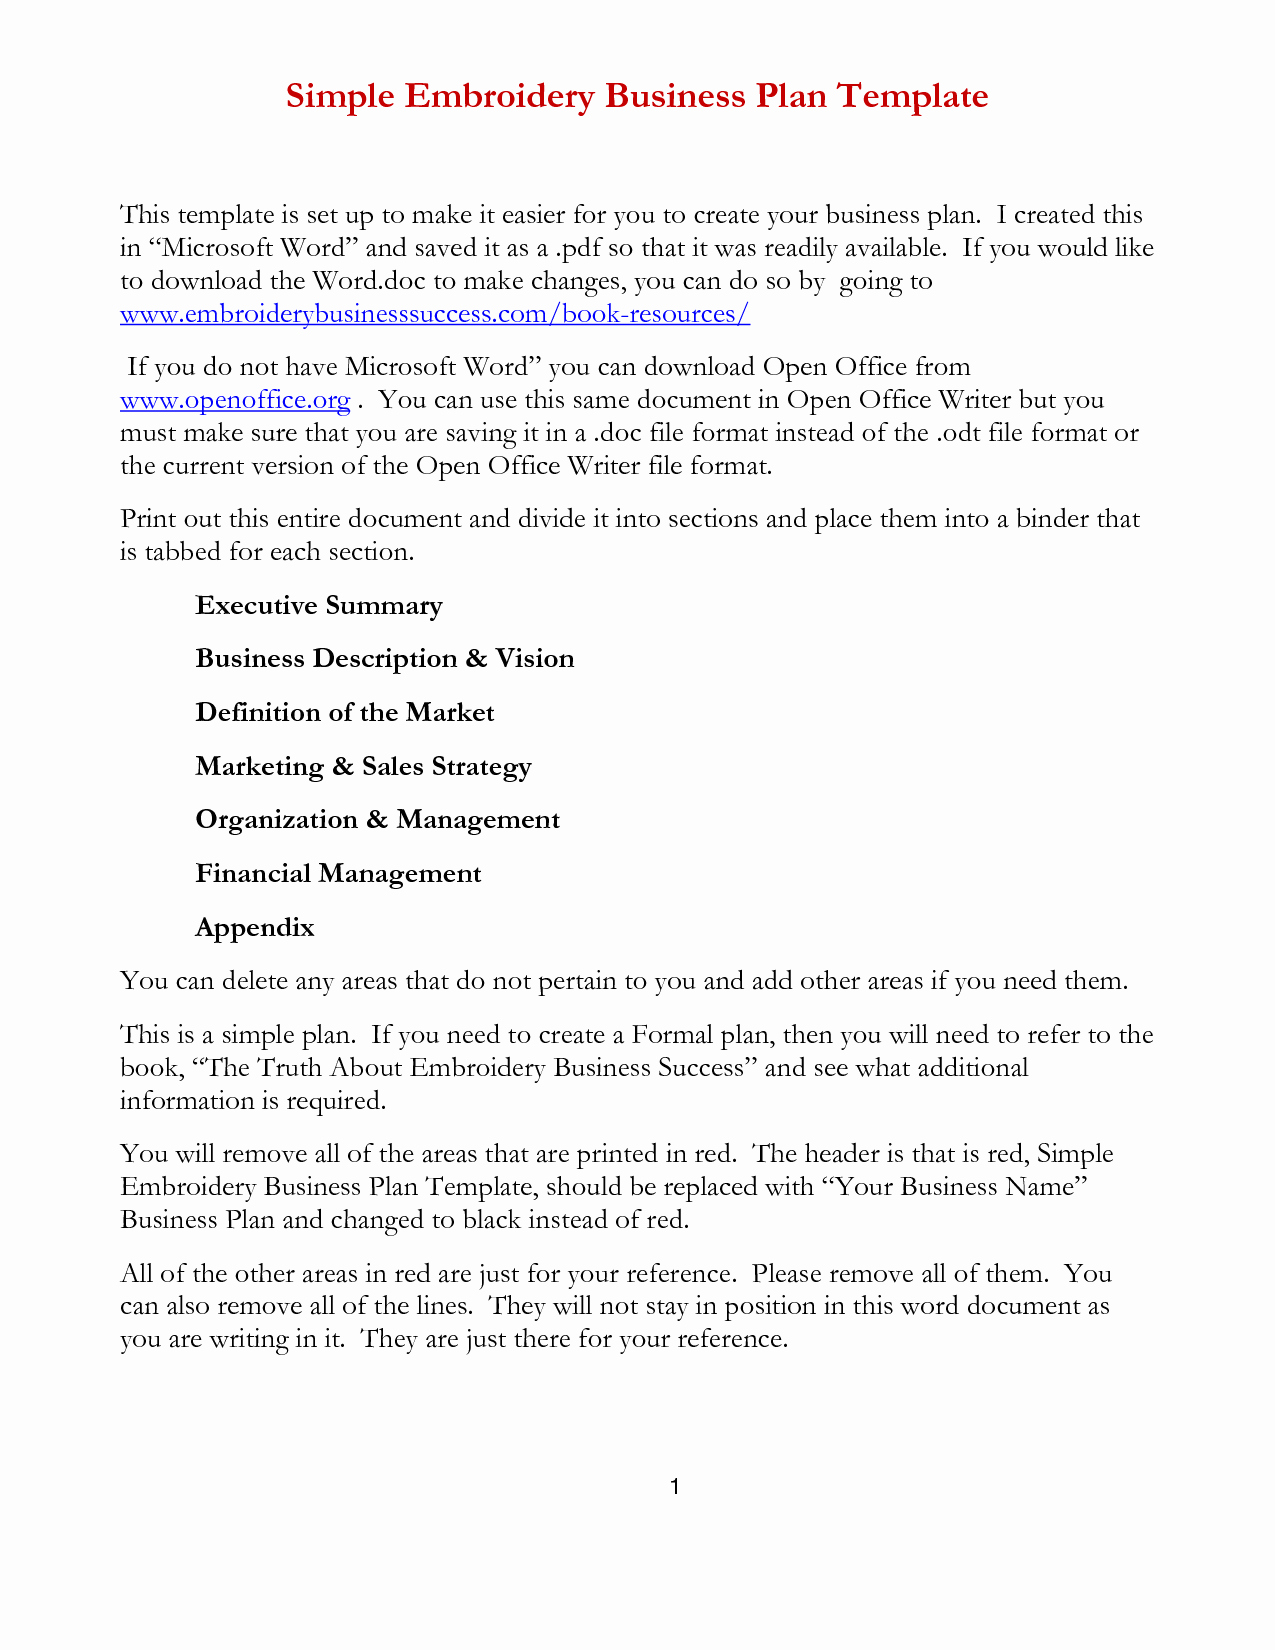 Simple Business Plan Example New Short Business Plan Template Word Reportz725 Web Fc2